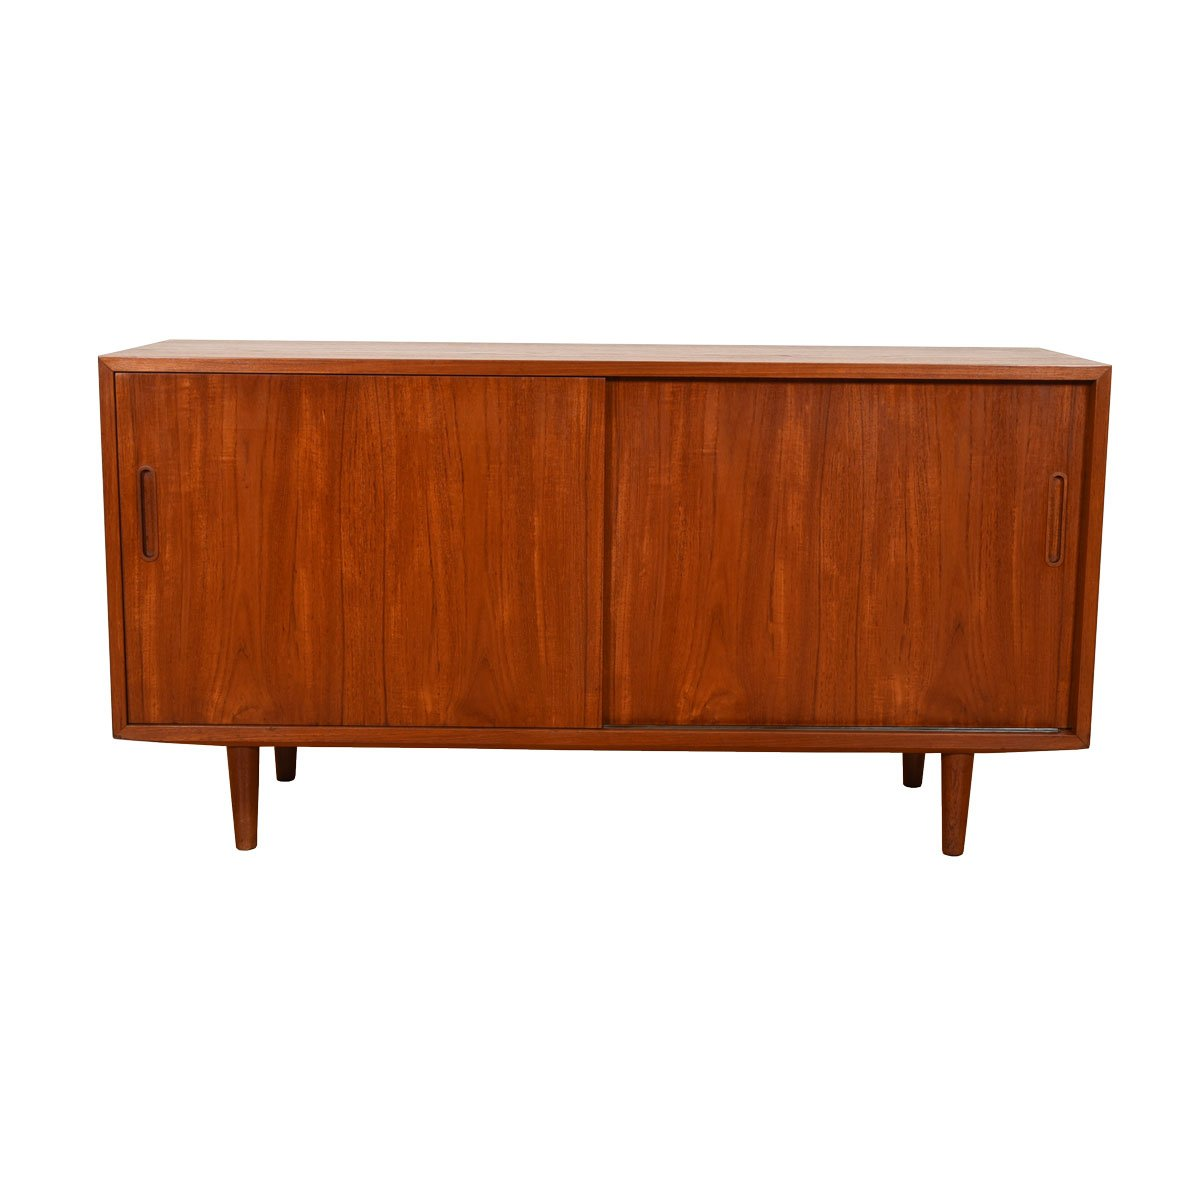 Danish Modern Teak Sliding Door Media Cabinet / Credenza.